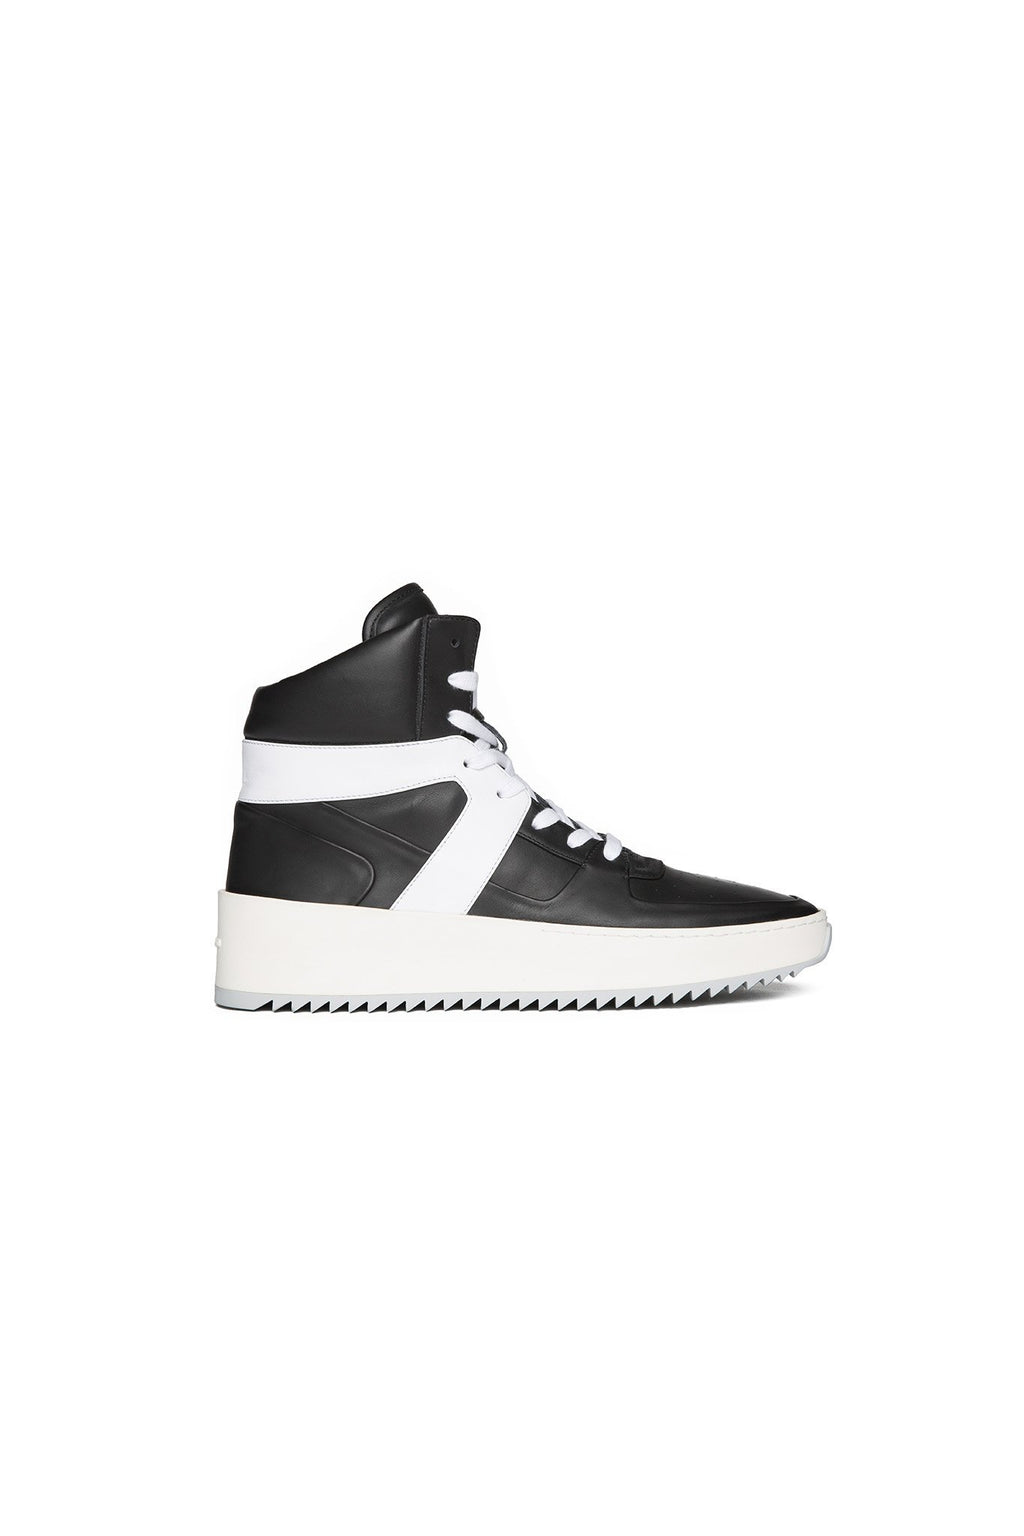 1987 Black Basketball Sneaker